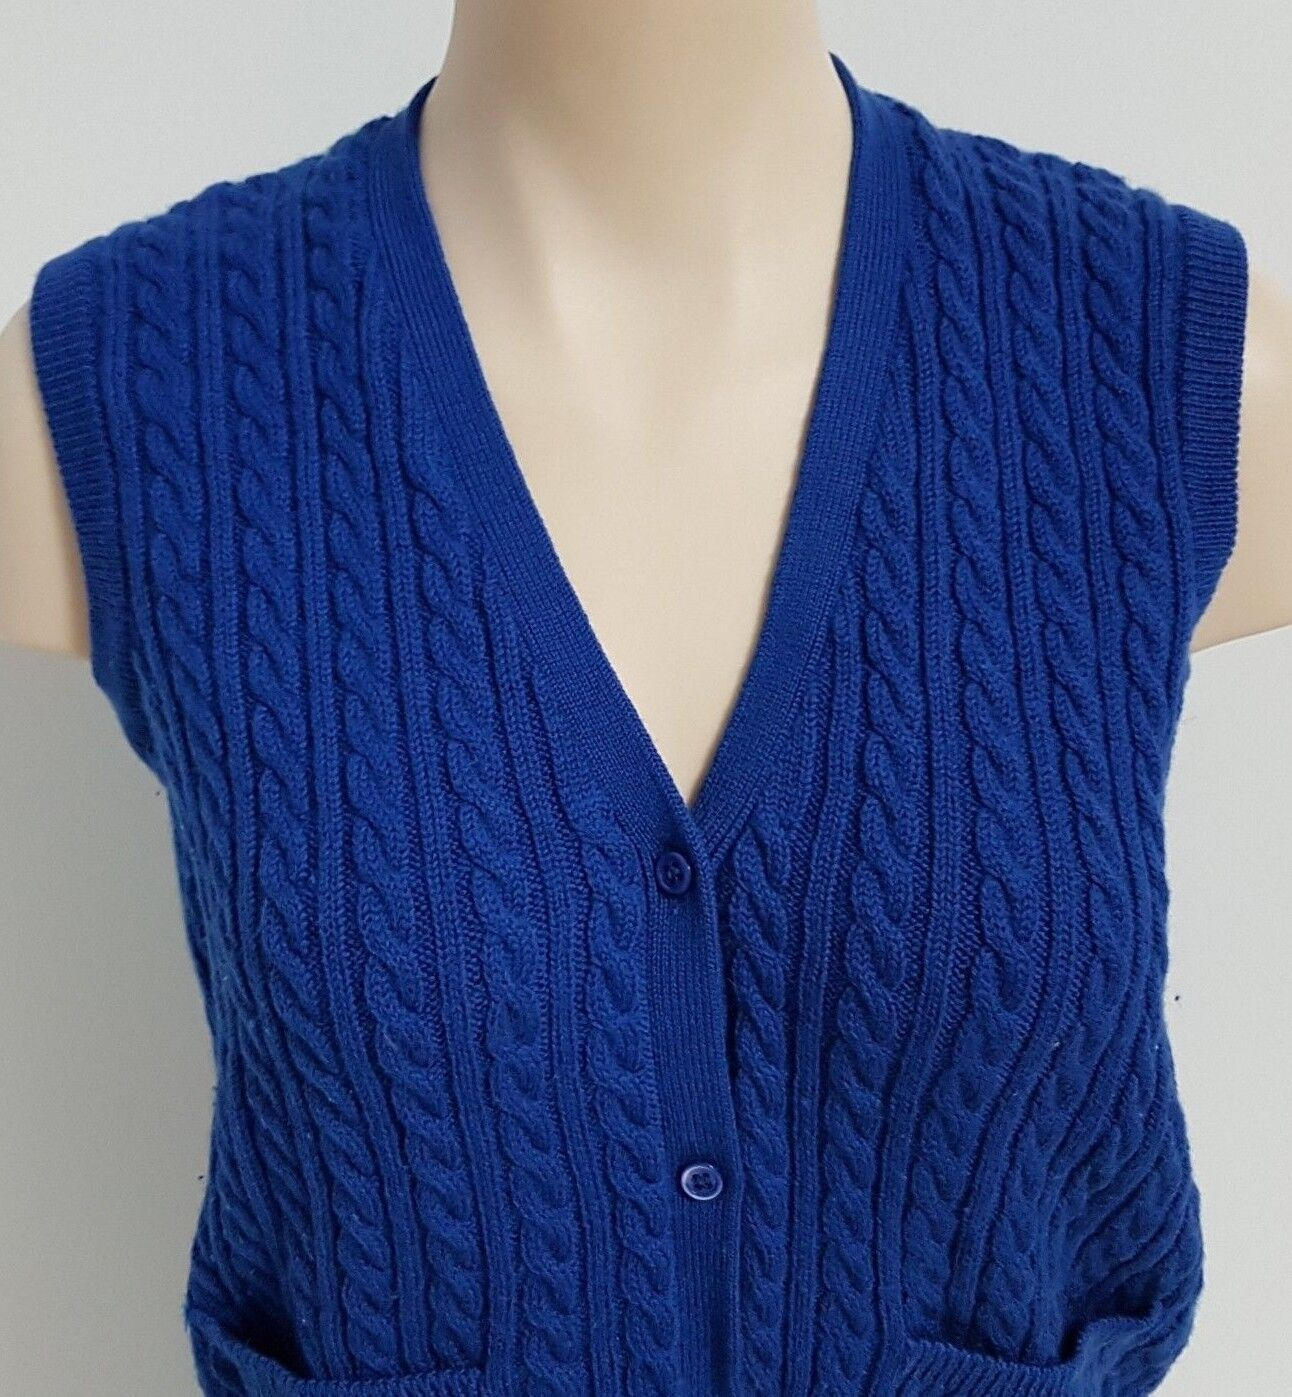 Ports International Womens Vest Cable Knit Pure Virgin Wool Size Large blueE